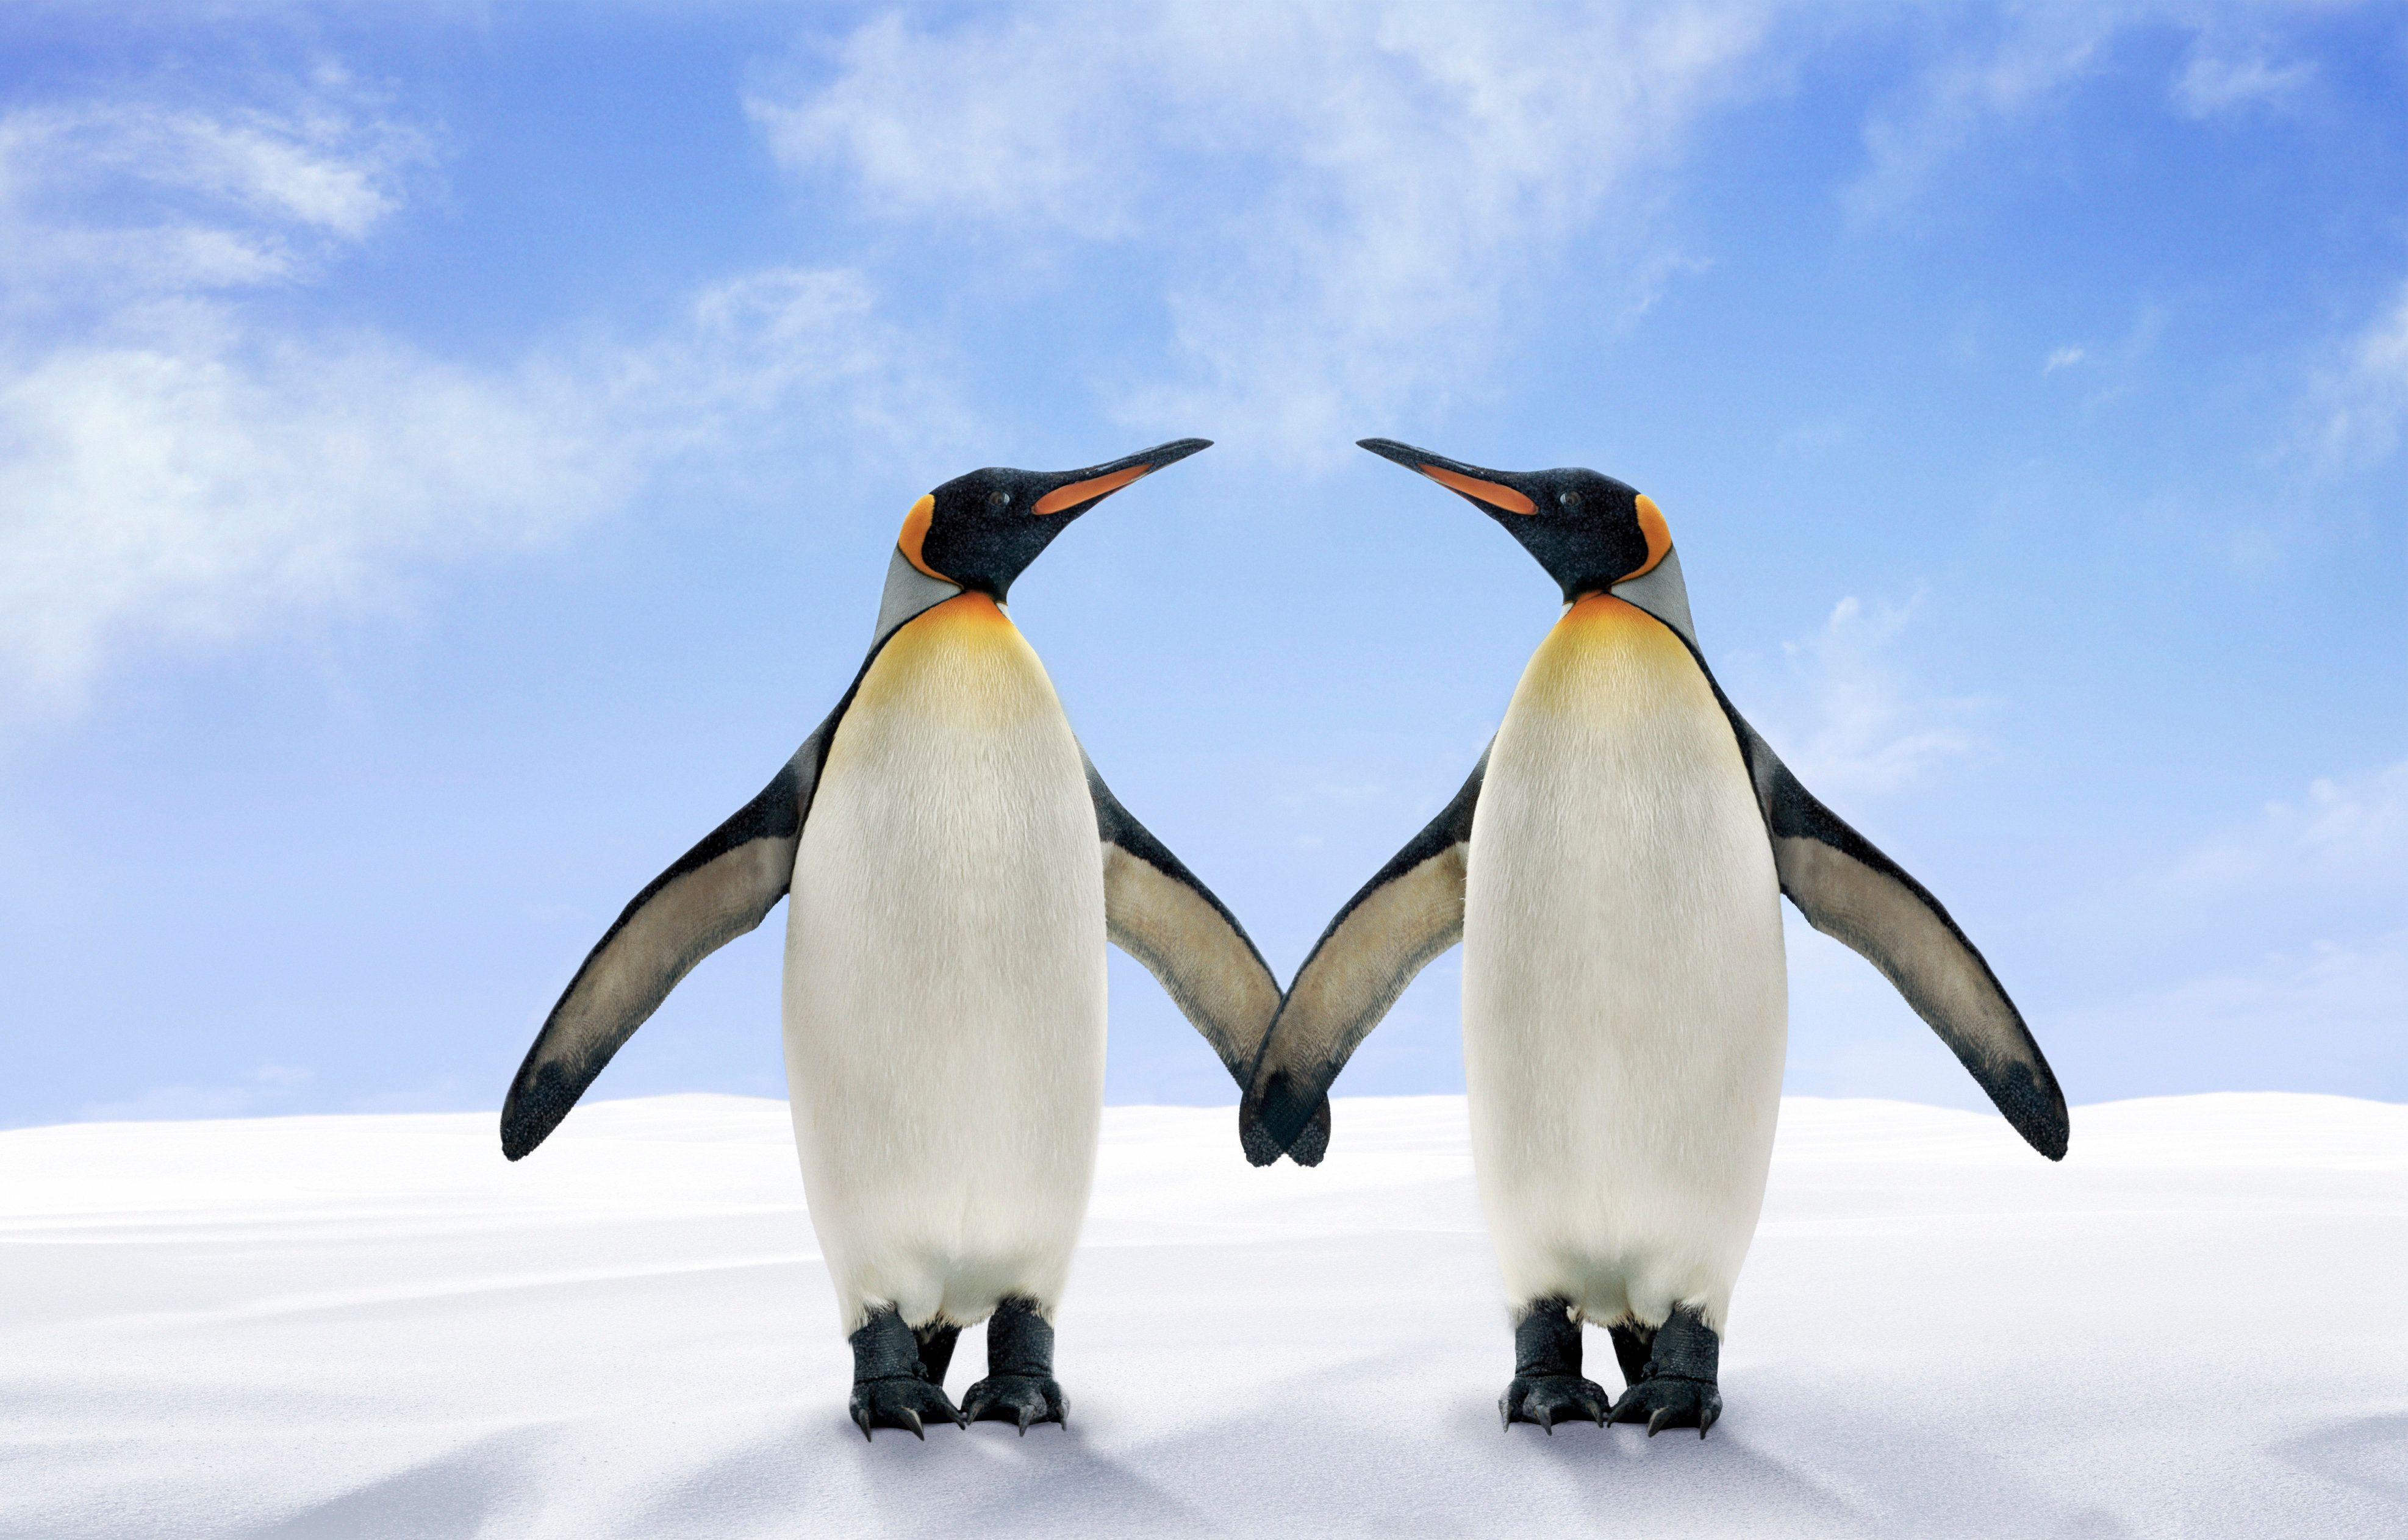 Two King Penguins Stand Side by Side With Their Wings Touching